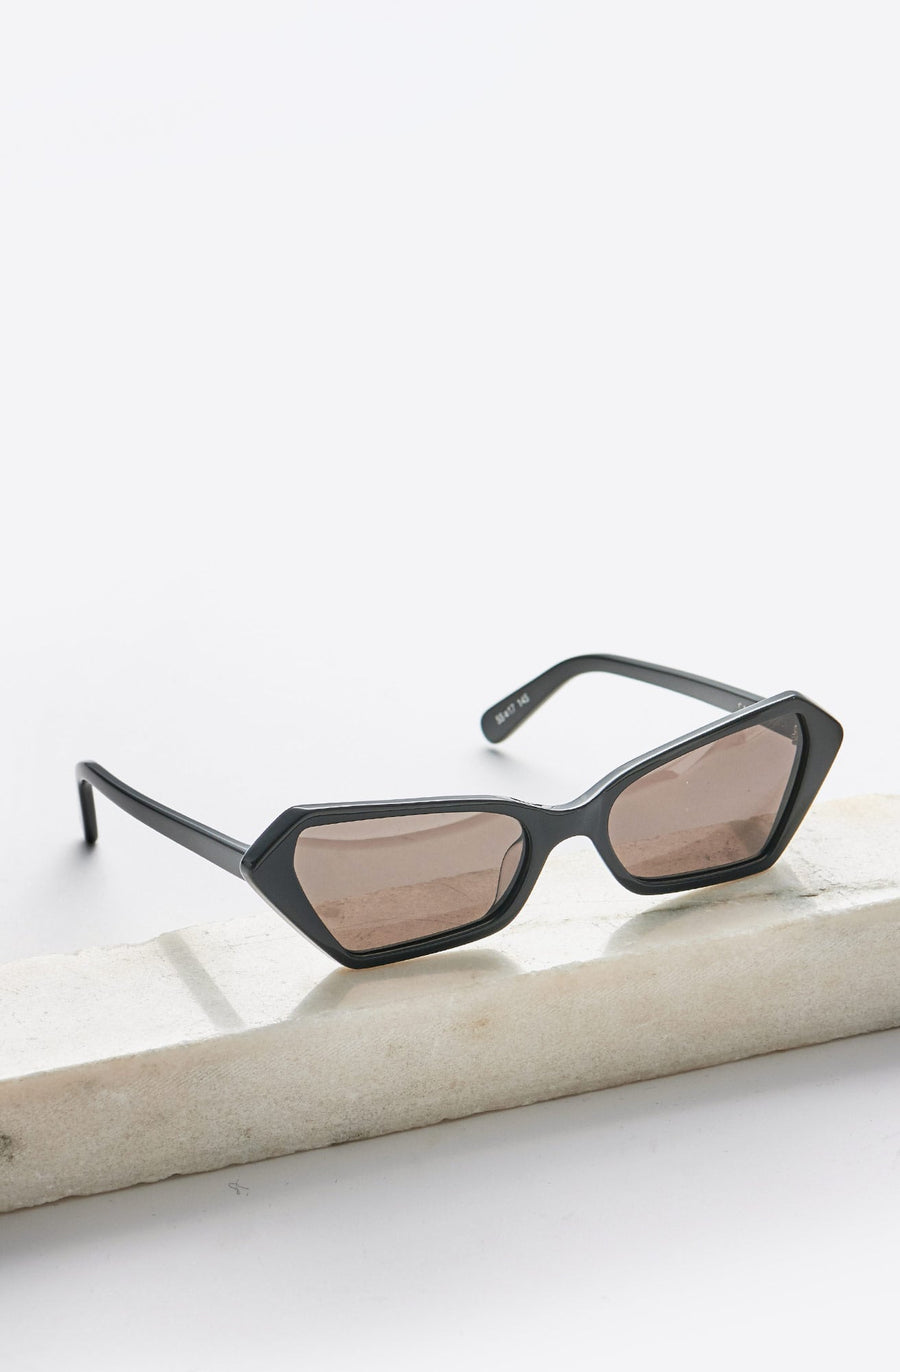 Battu Sunglasses-midnight/mystery